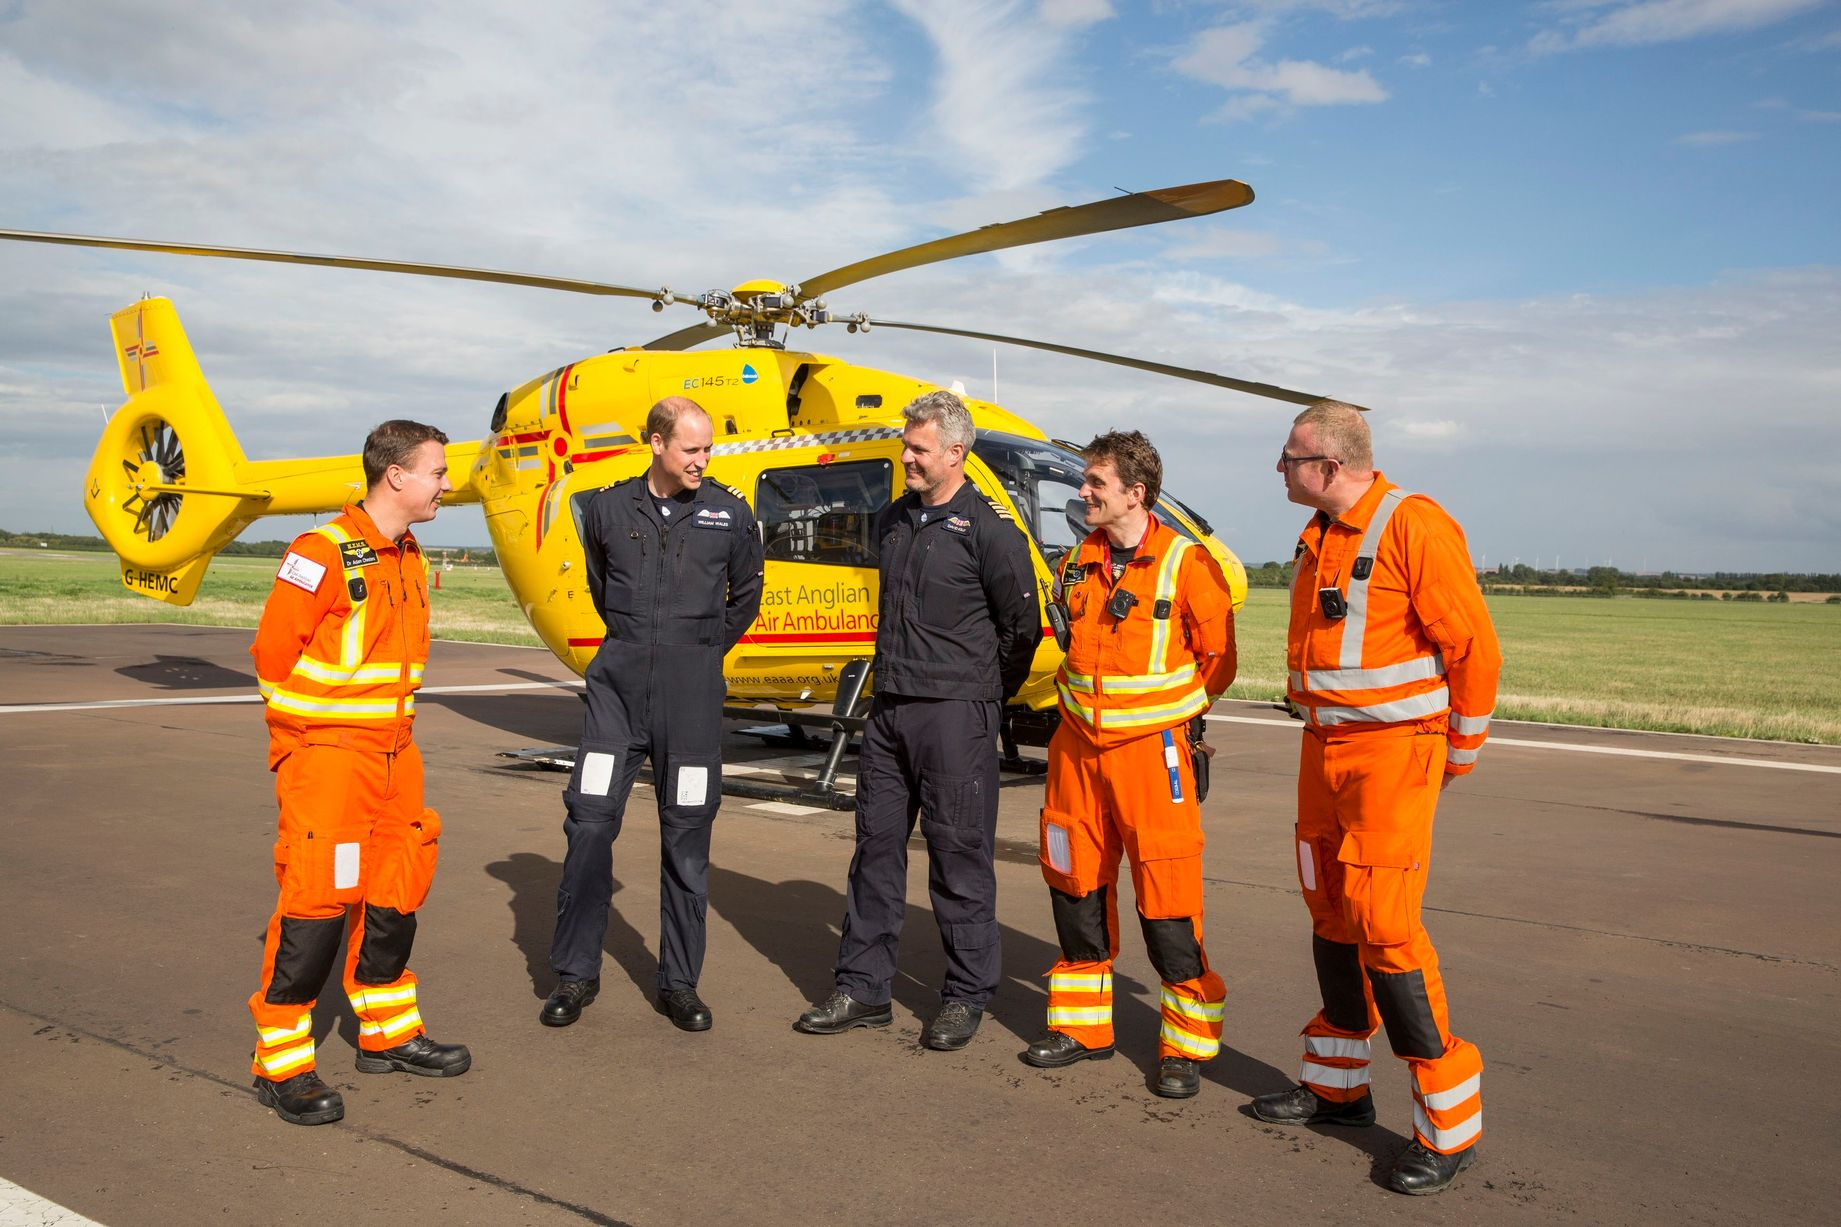 The Duke of Cambridge Poses for a final photo with the night shift crew as he starts his final shift with the East Anglian Air Ambulance based at Marshall Airport near Cambridge on July 27. (Left to right) Dr Adam Chesters, Prince William, Cpt Dave Kelly, Dr Tobias Gouse and CCP Carl Smith. Picture: Heathcliff O'Malley/The Daily Telegraph/PA Wire